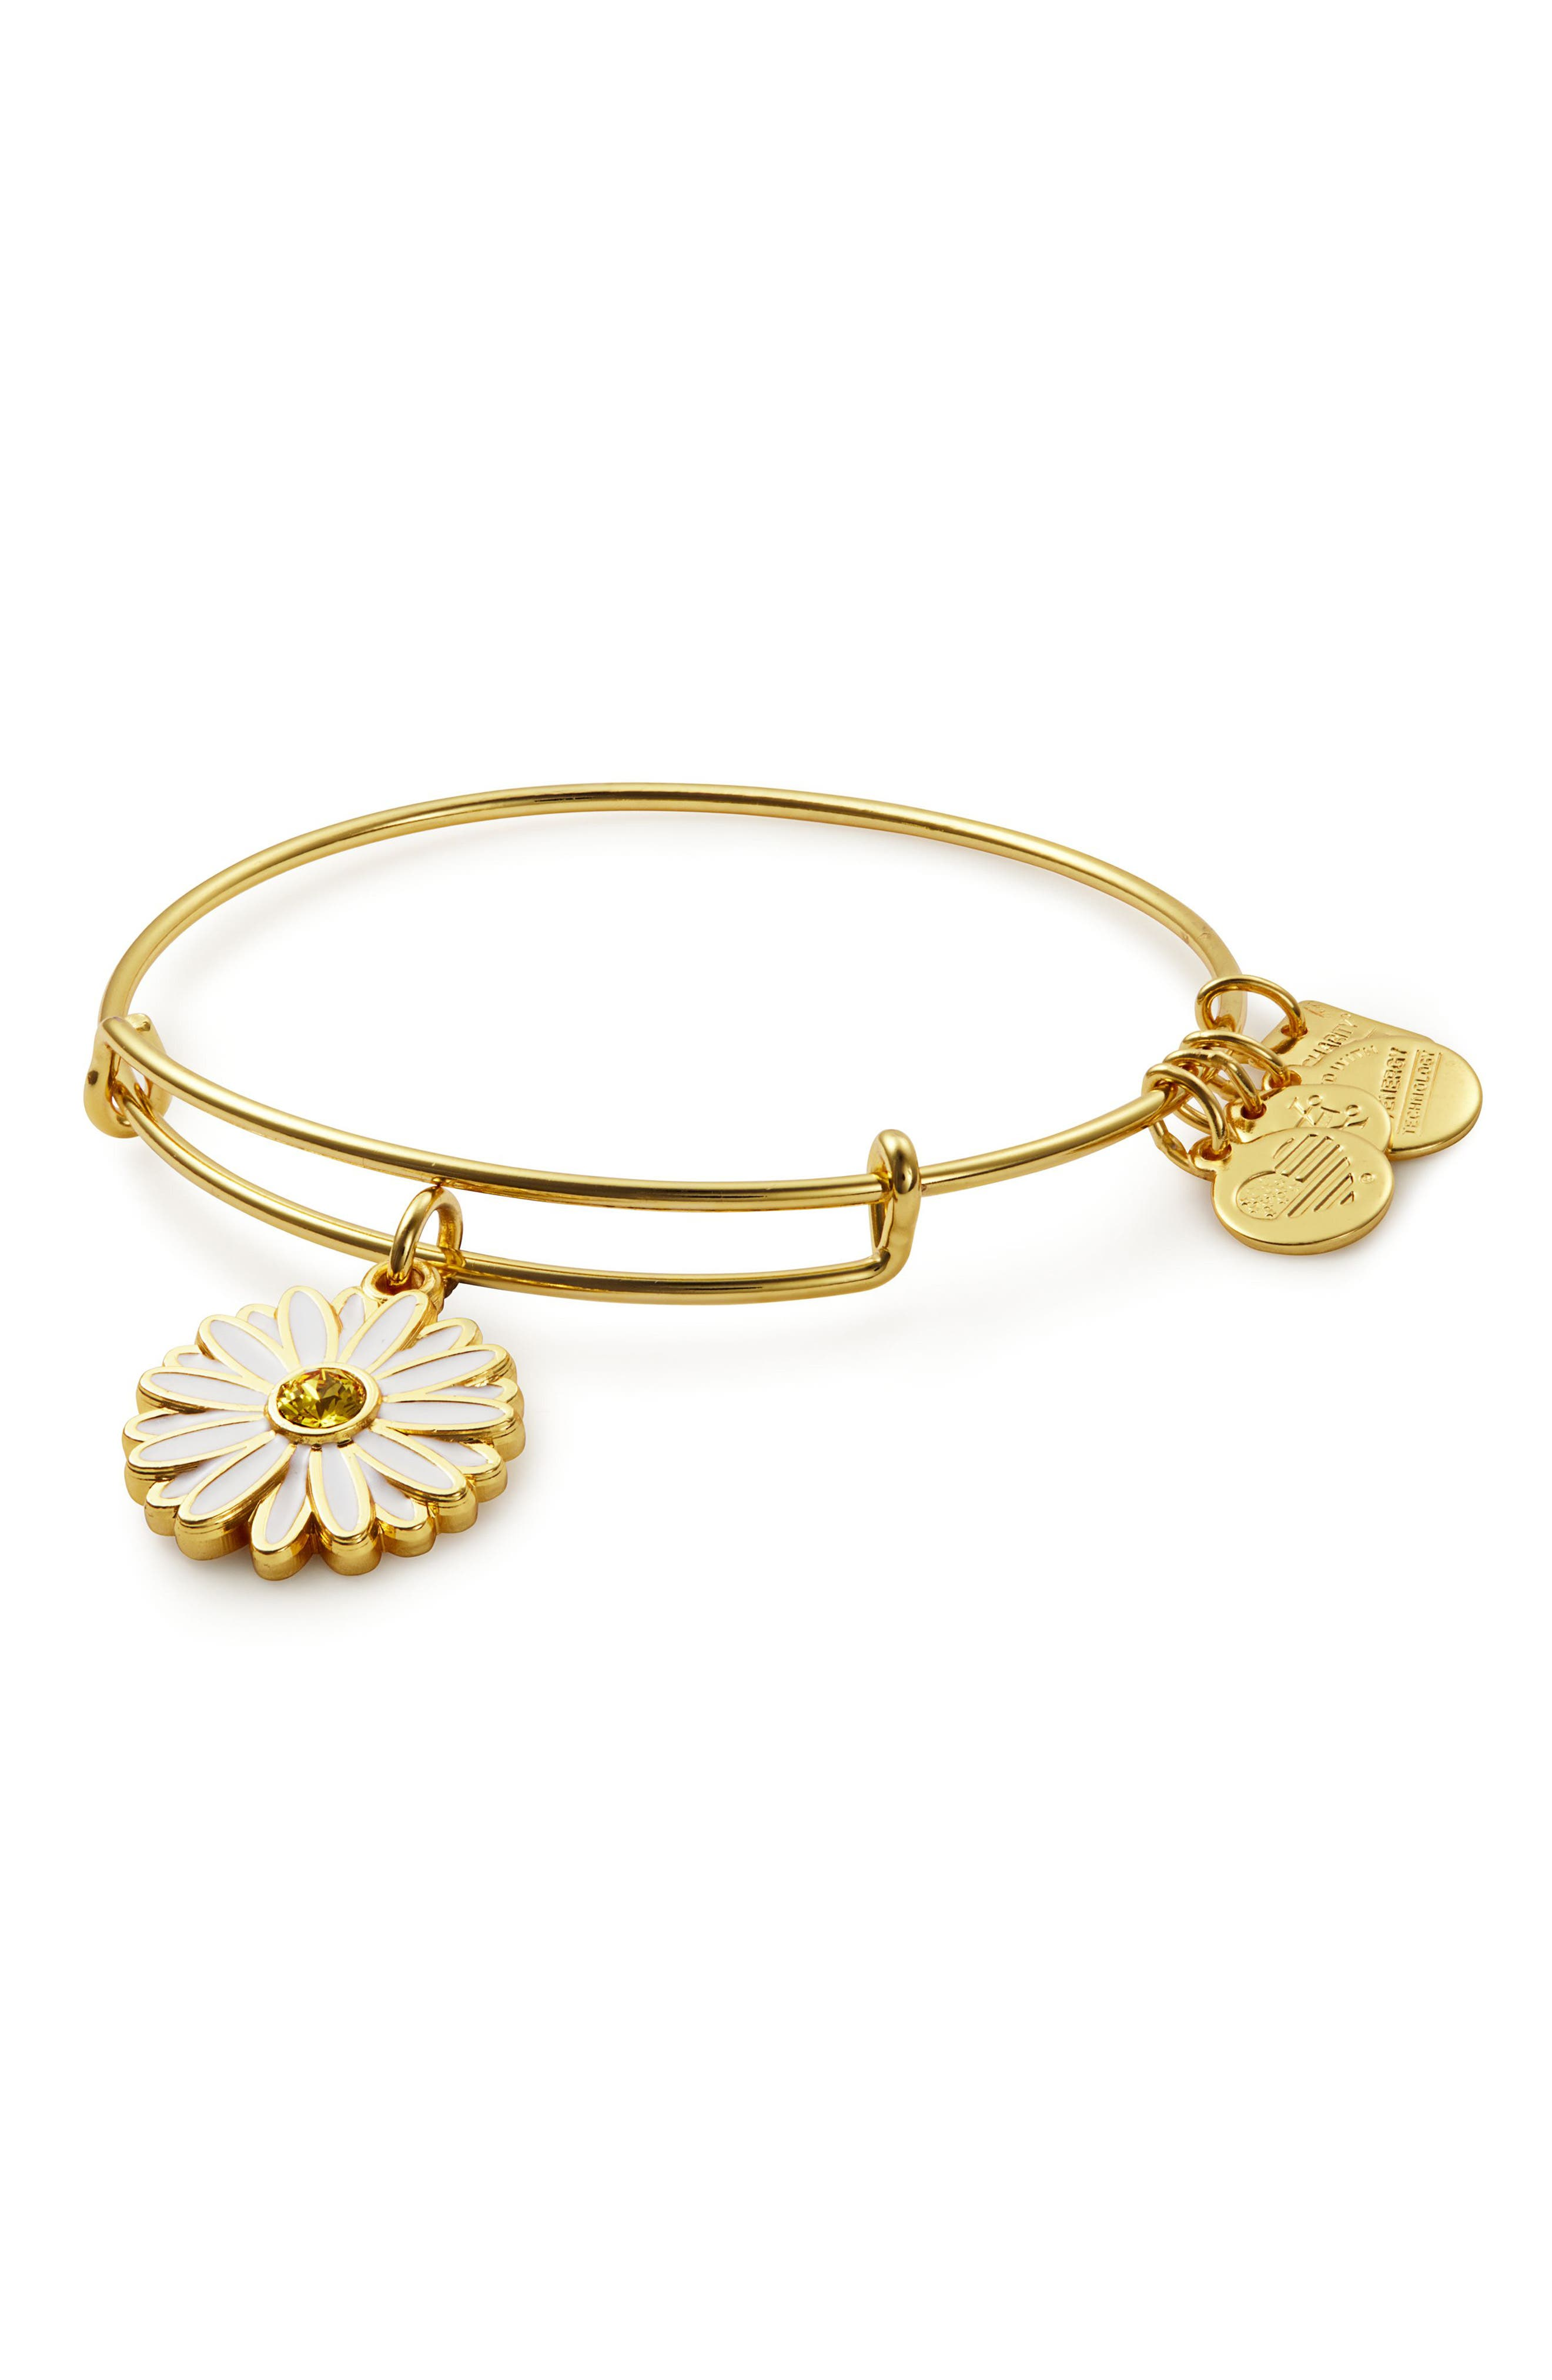 Alex and Ani Expandable Charm Bracleet